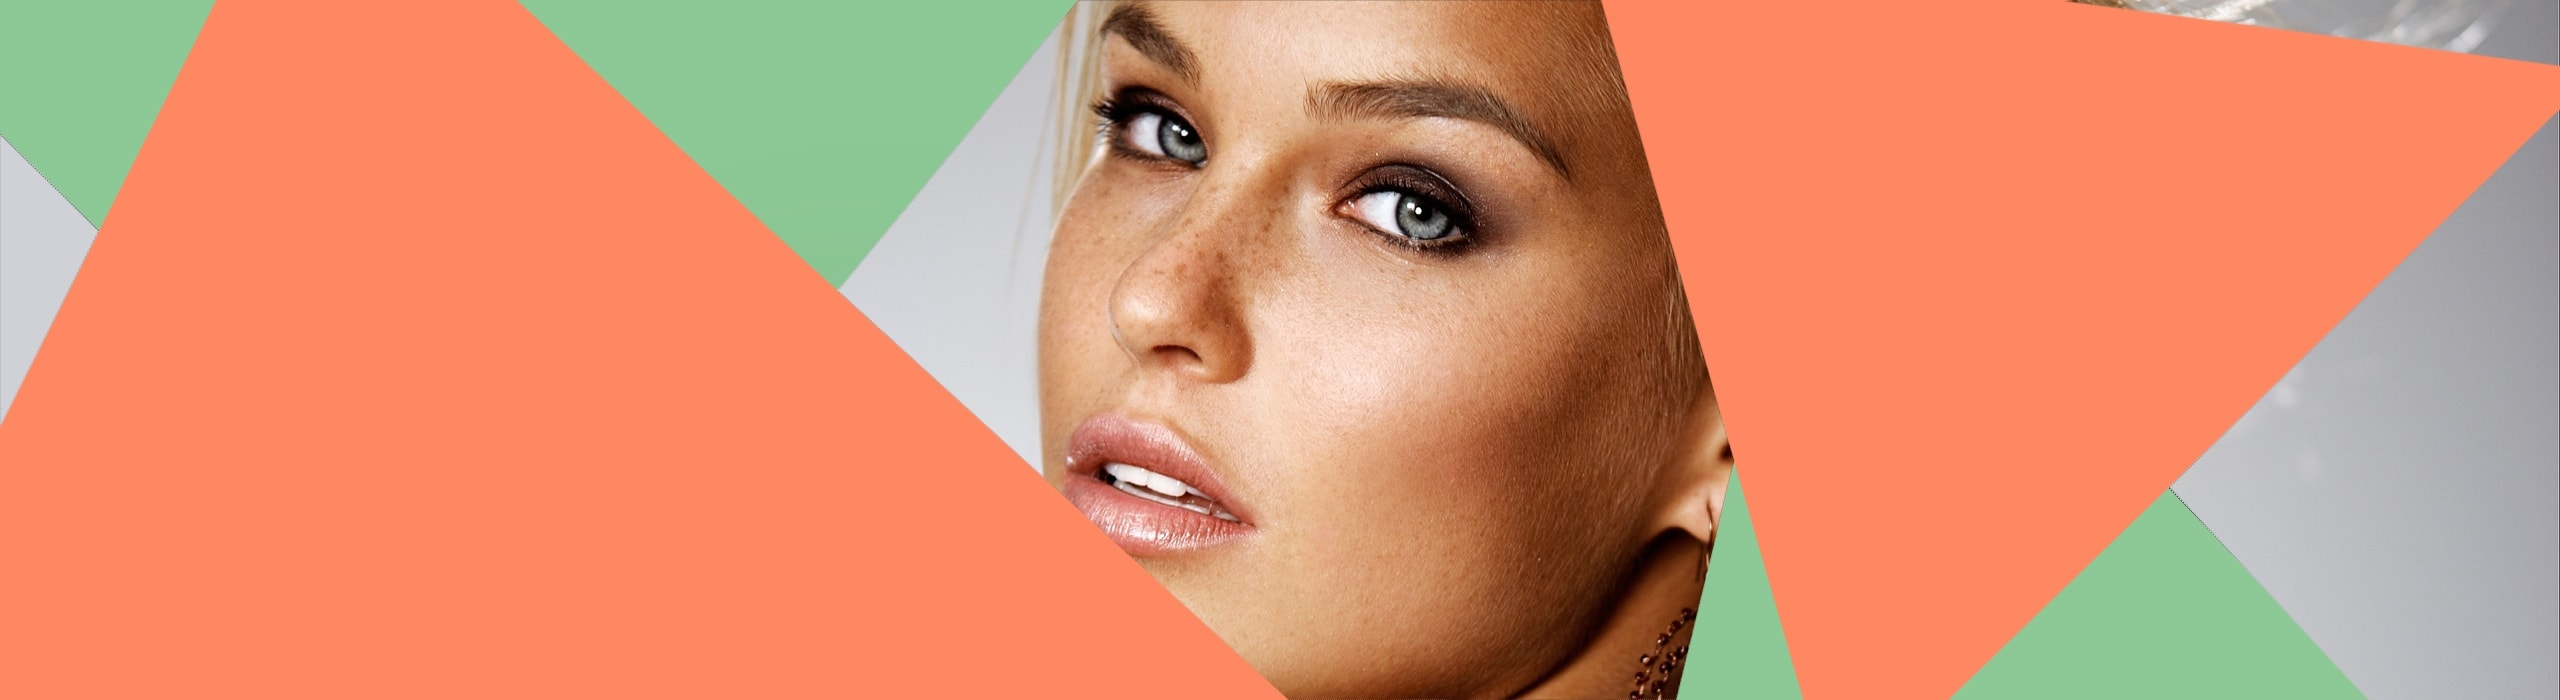 Google Bar Refaeli - natie-bar-rafaeli-banner - Natie Branding Agency